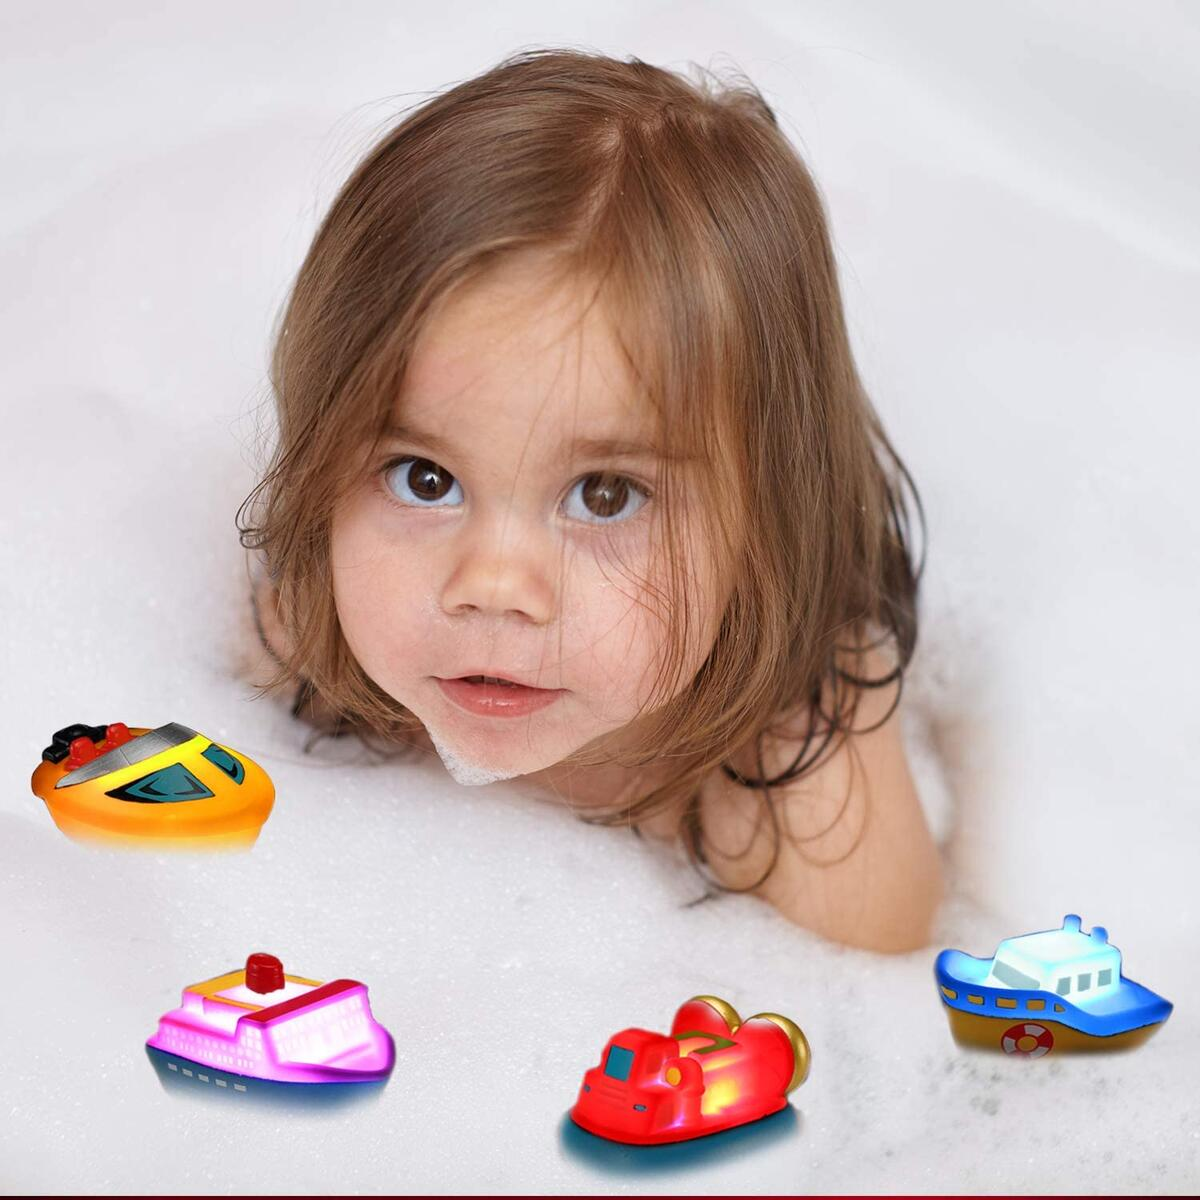 Bath Toys, 6 Packs Light up Boat Floating Rubber Set, Flashing Color Changing Light in Water, Tub Gift for Baby Infant Toddler Child Kid, Bathtub Ship Toy for Bathroom Shower Game Swimming Pool Party